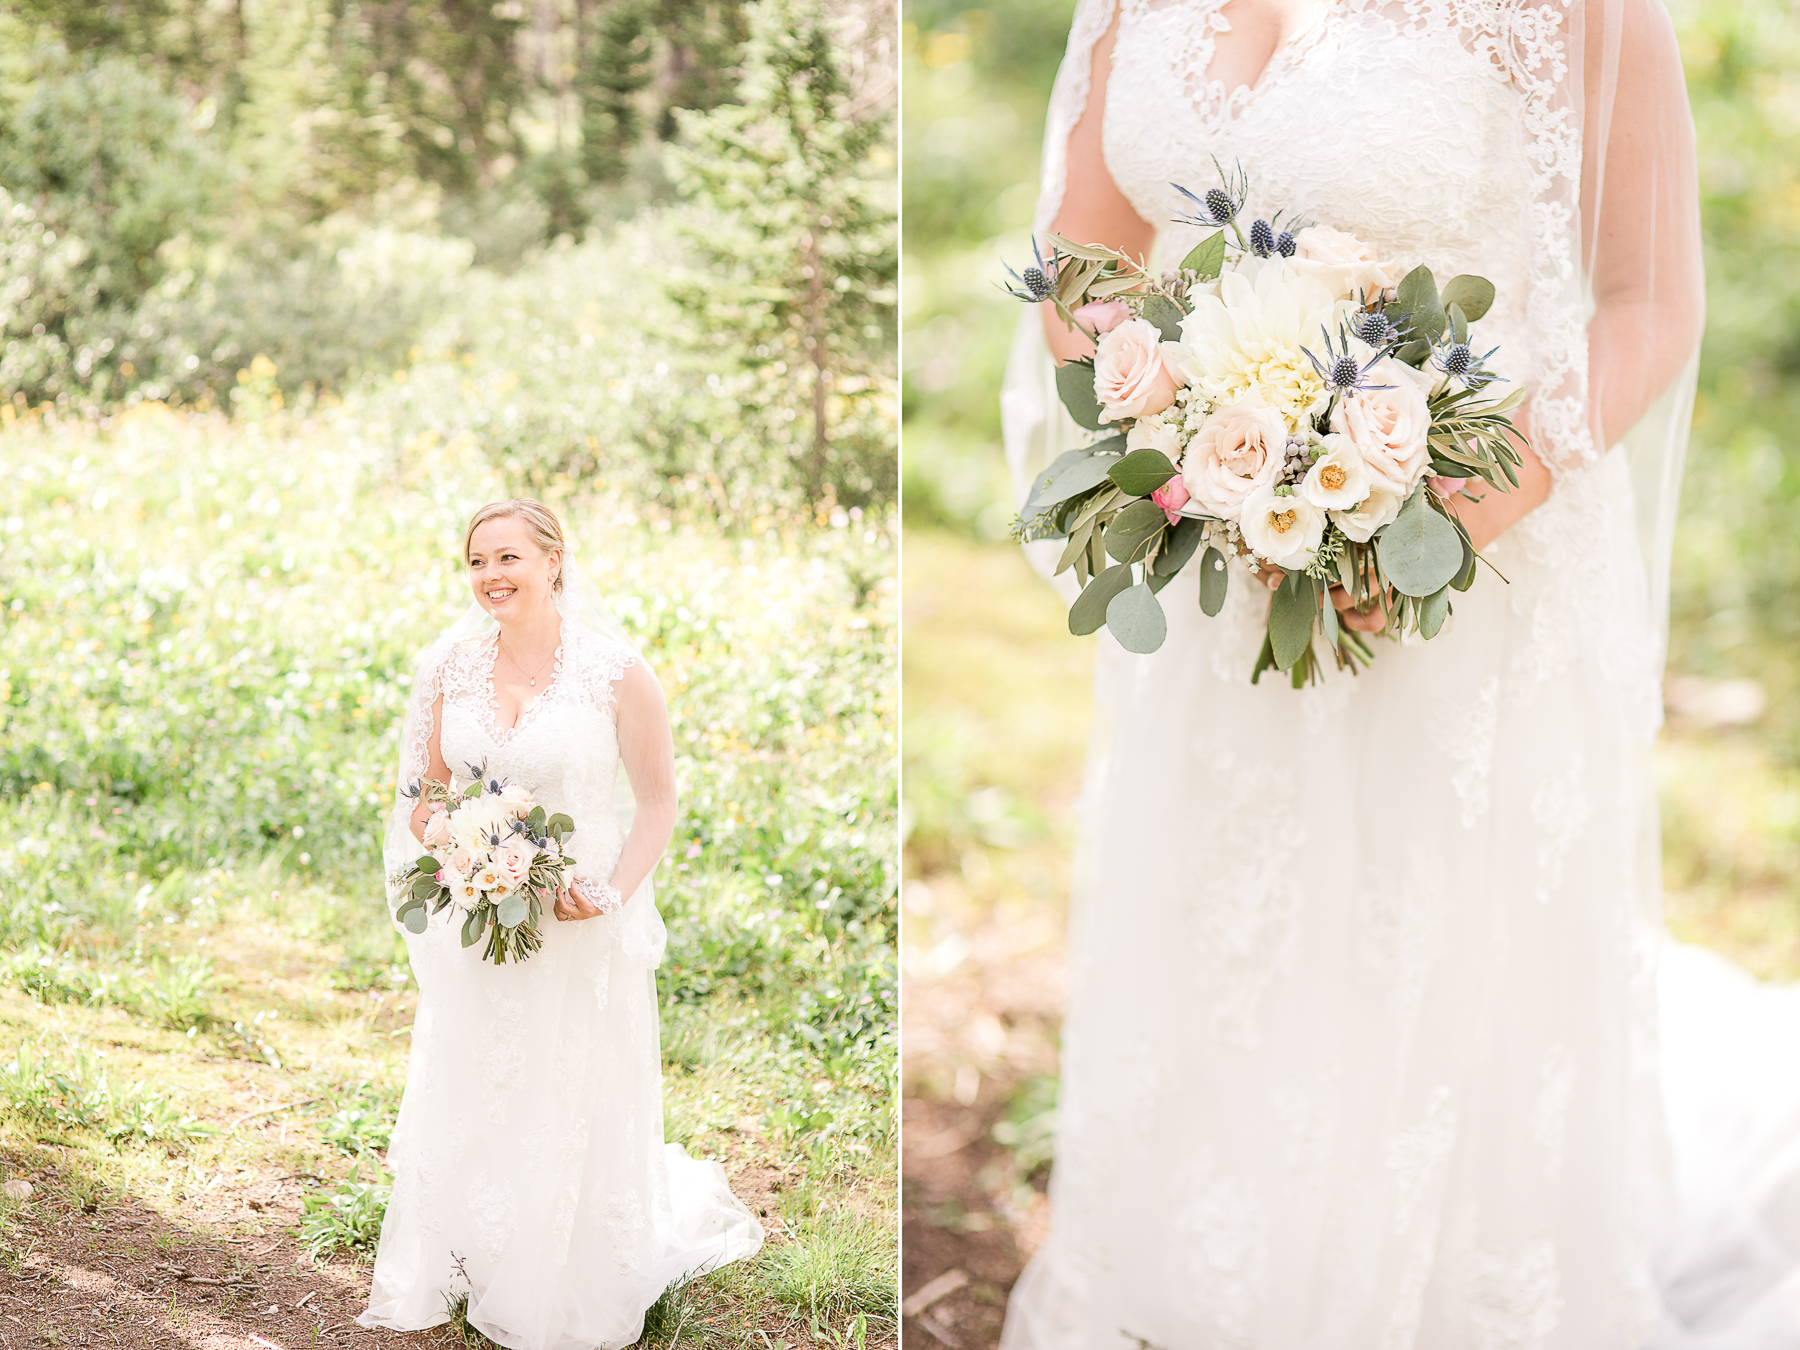 White lace bridal gown and neutral bridal bouquet